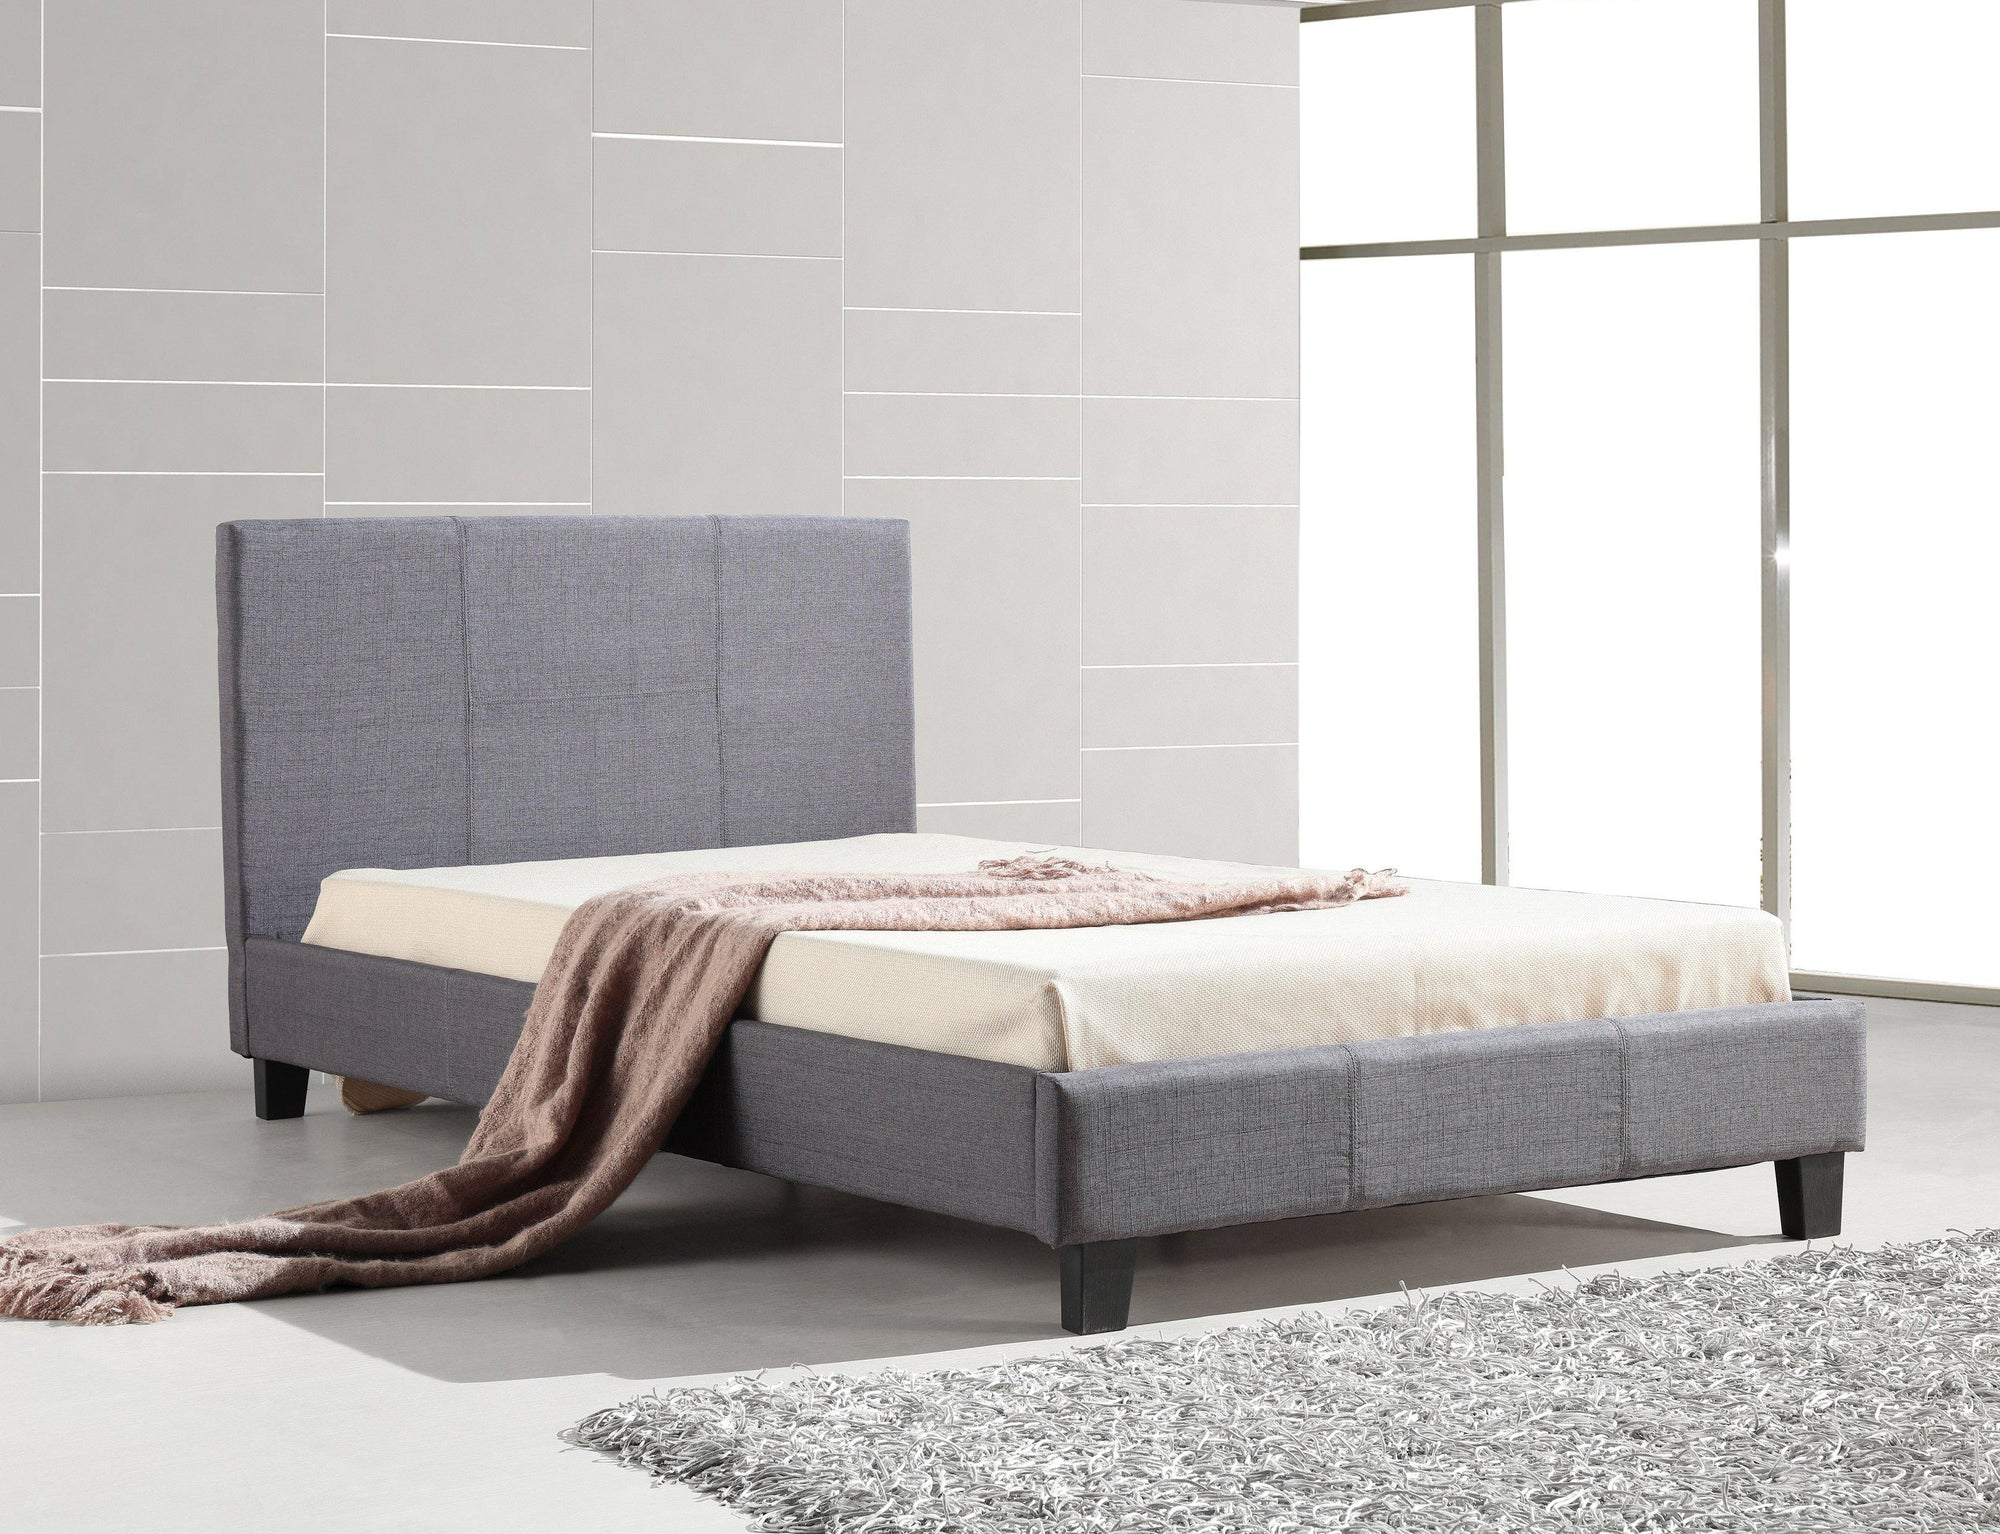 Palermo Linen Fabric Bed Frame Grey King Single - Evopia